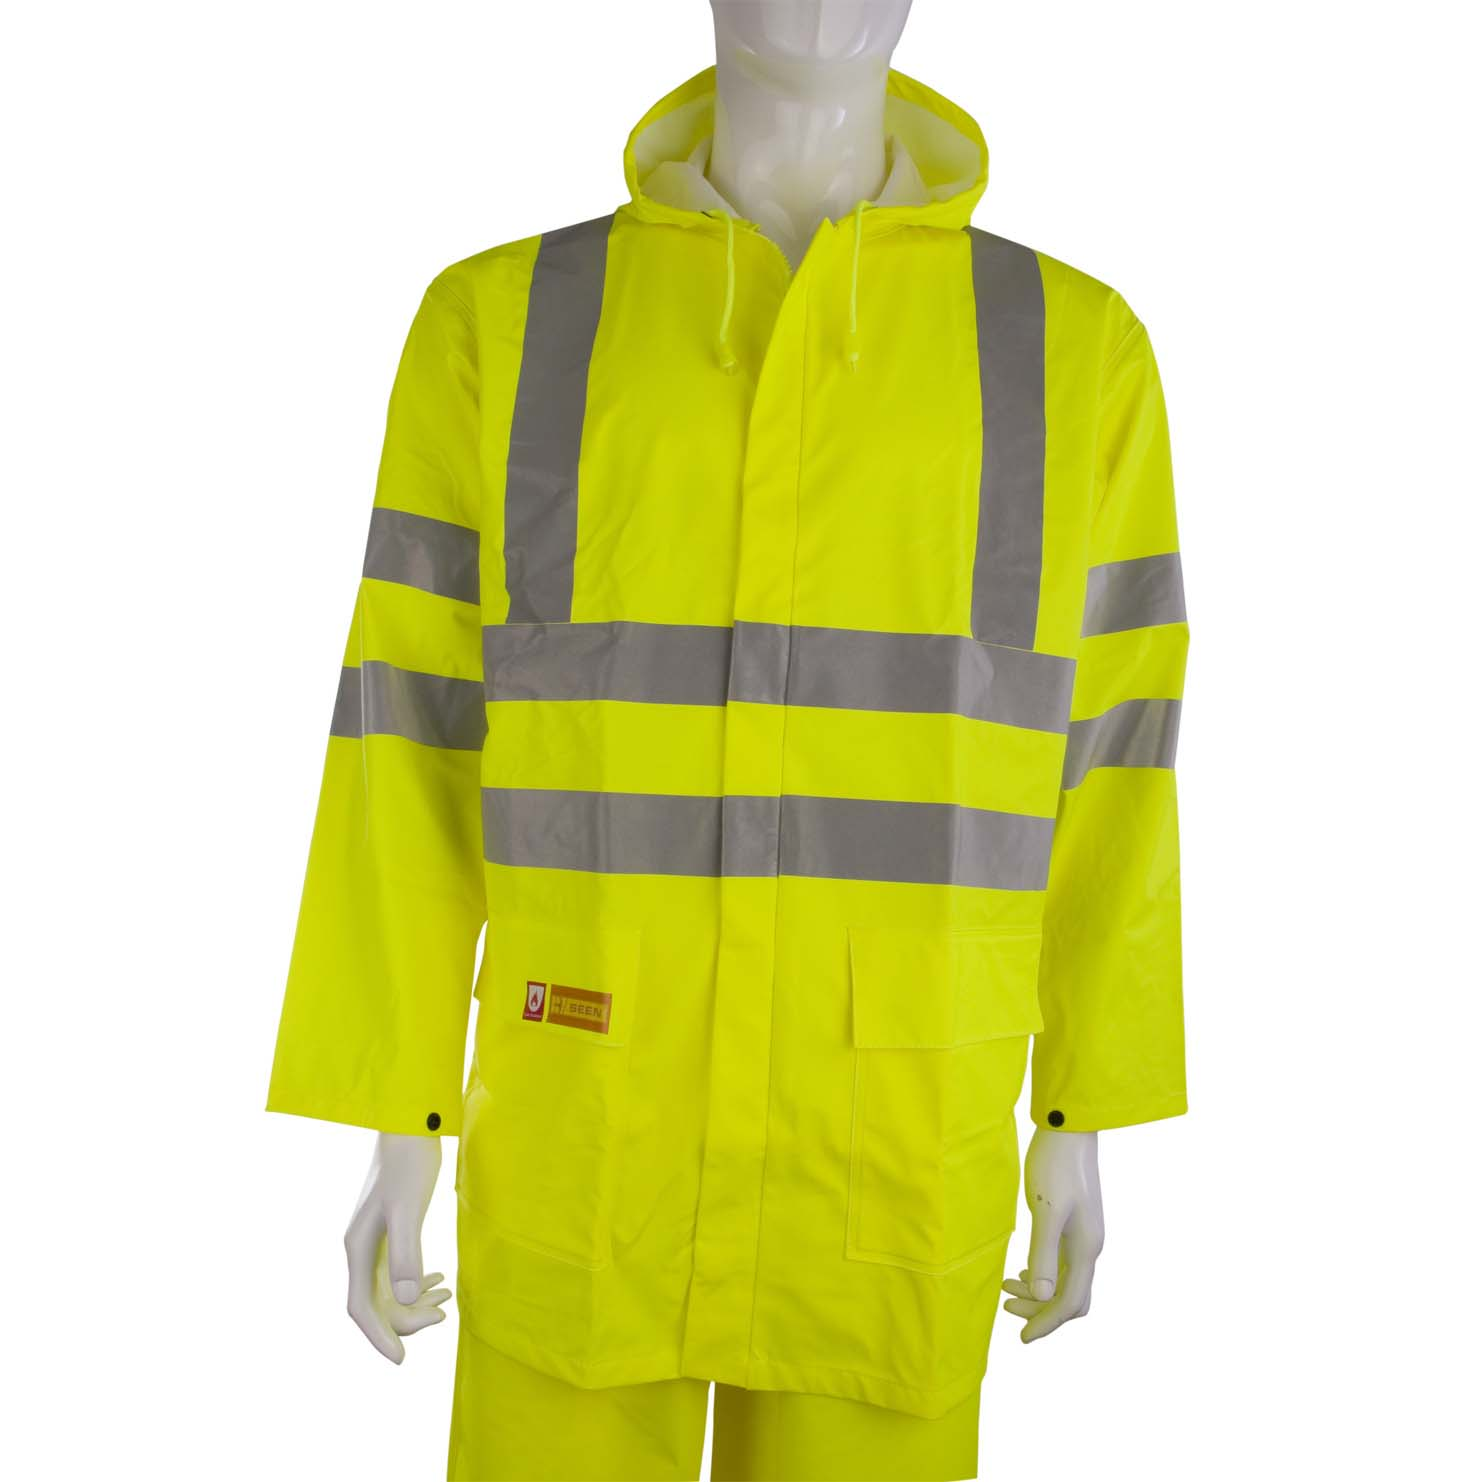 B-Seen Fire Retardant Jacket Anti-static XL Sat Yellow Ref CFRLR55SYXL *Up to 3 Day Leadtime*